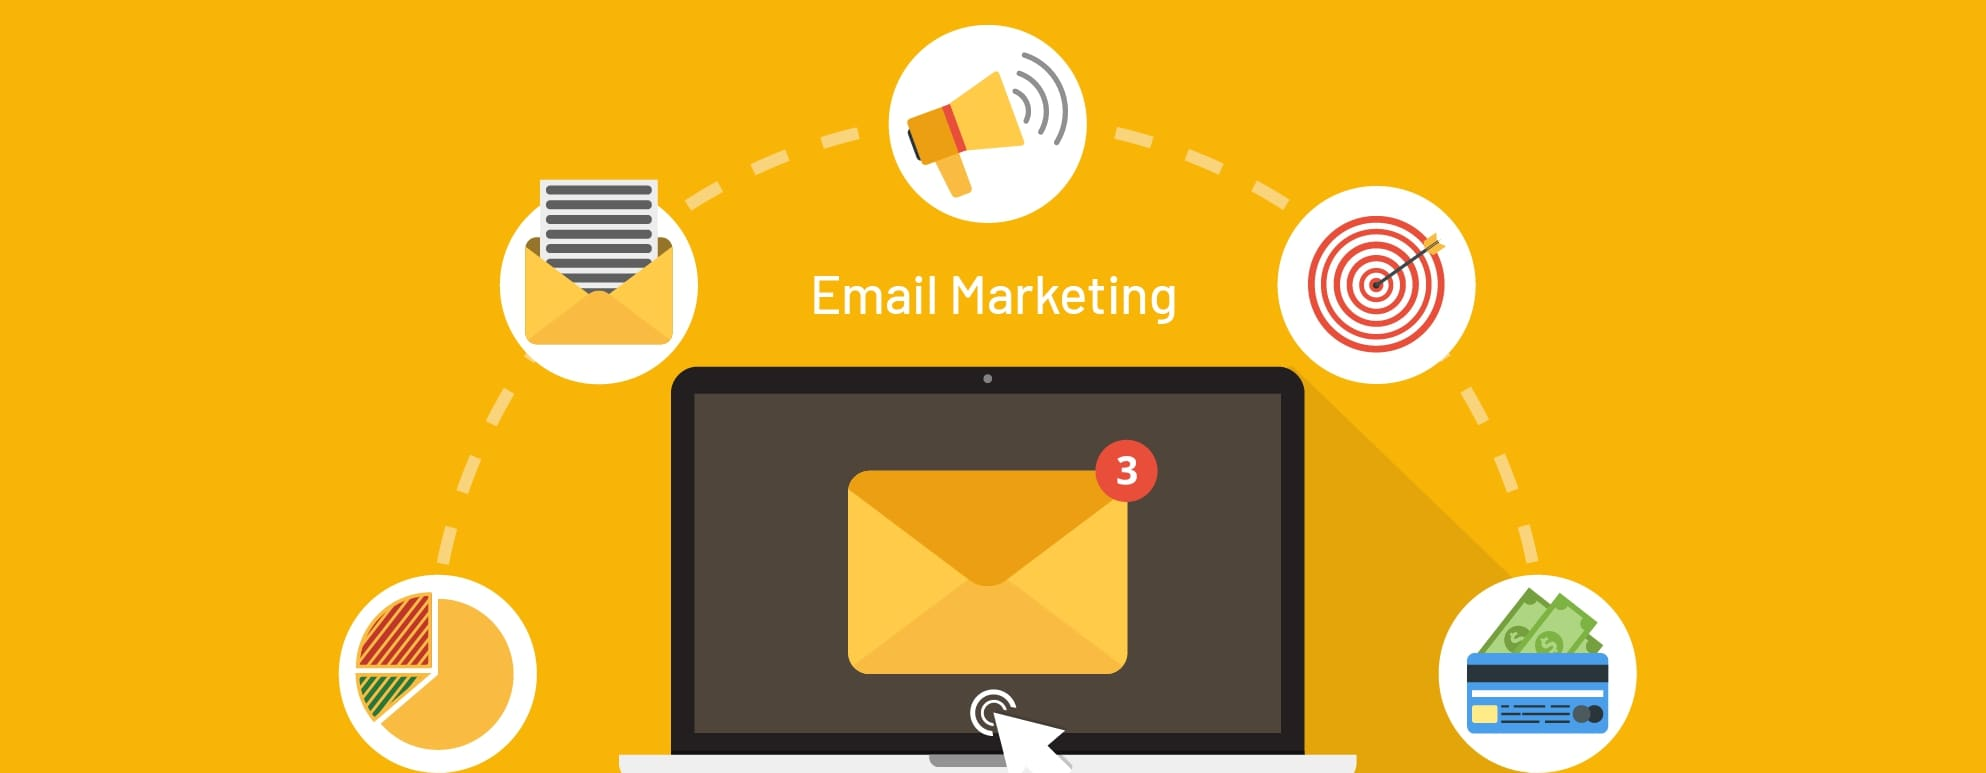 ABC_email marketing